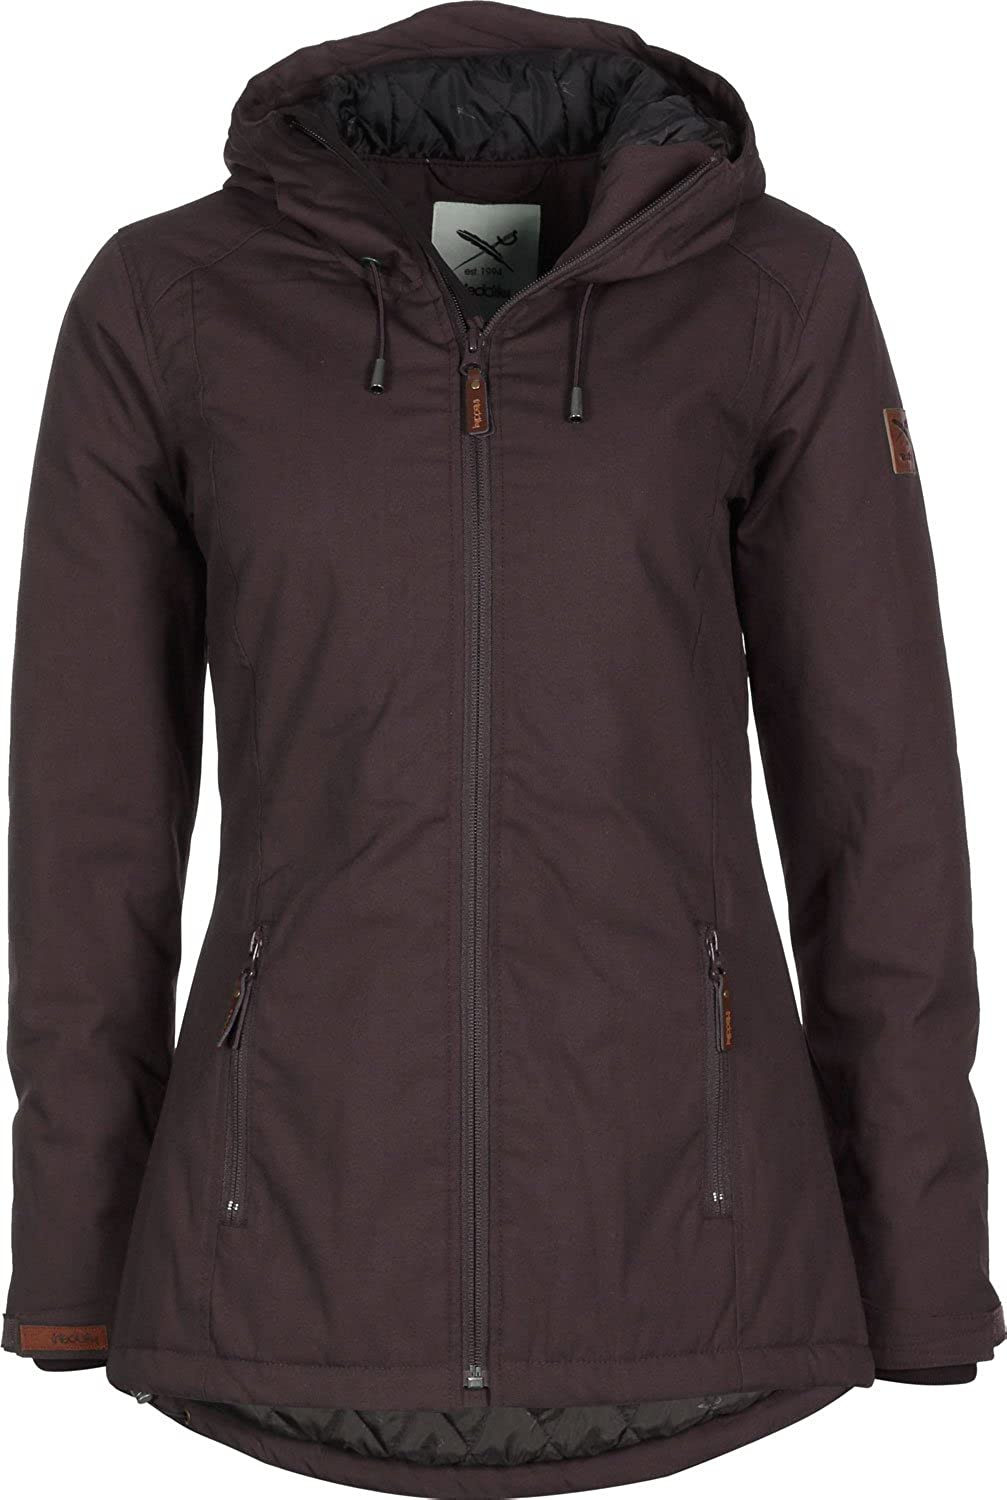 Iriedaily Kishory Segler Jacket Red Wine